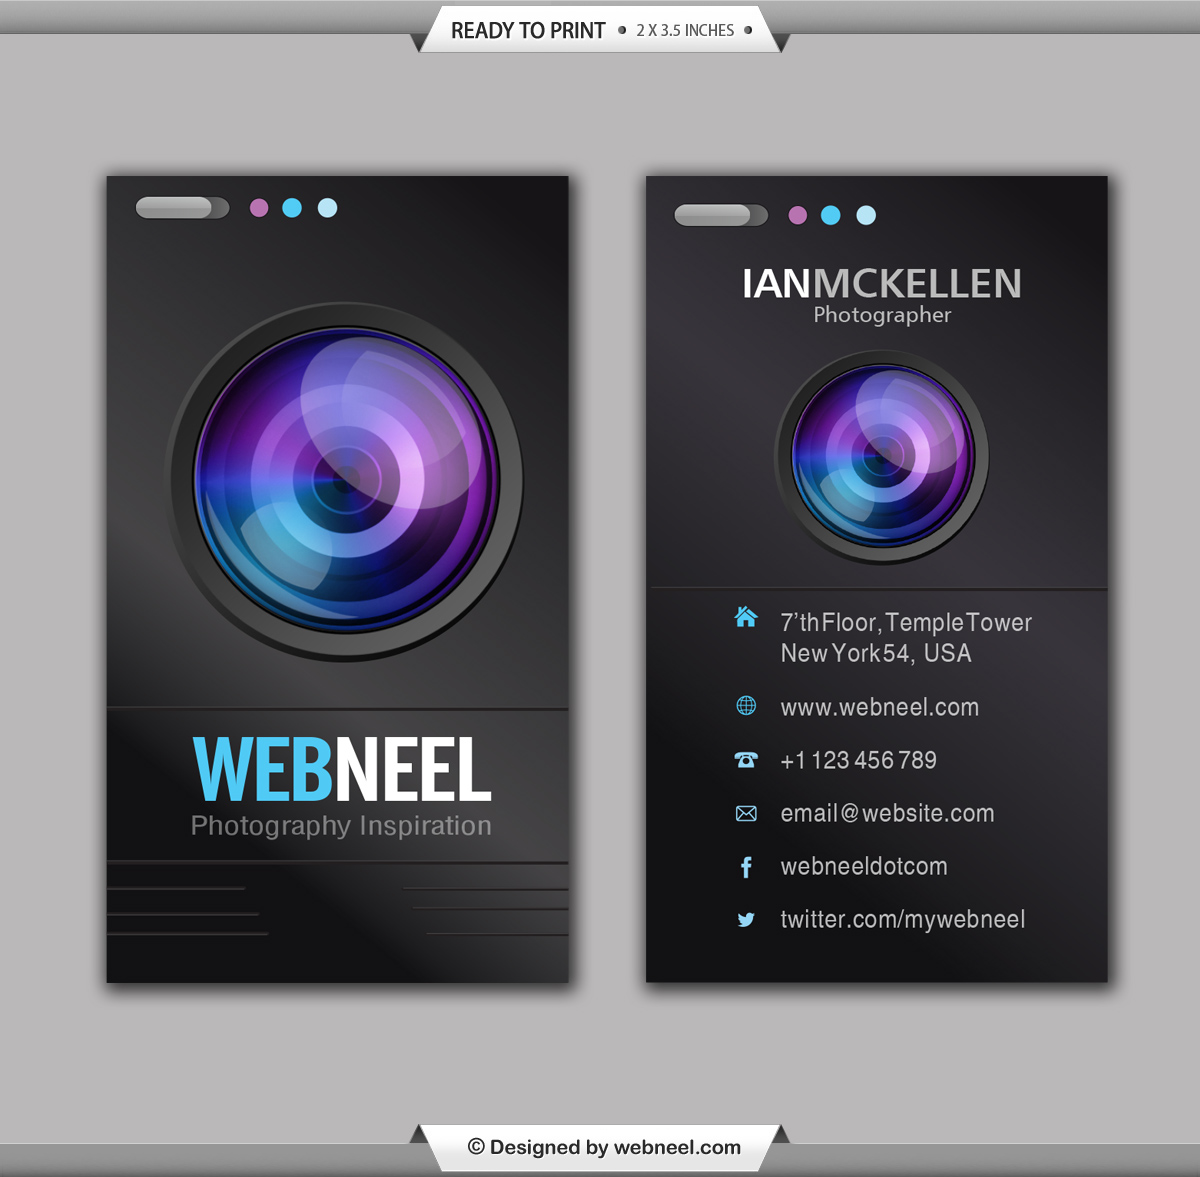 Photography business card design template 35 freedownload free photography business card design template format adobe illustrator version cs6 file size 5 mb color format cmyk cheaphphosting Gallery